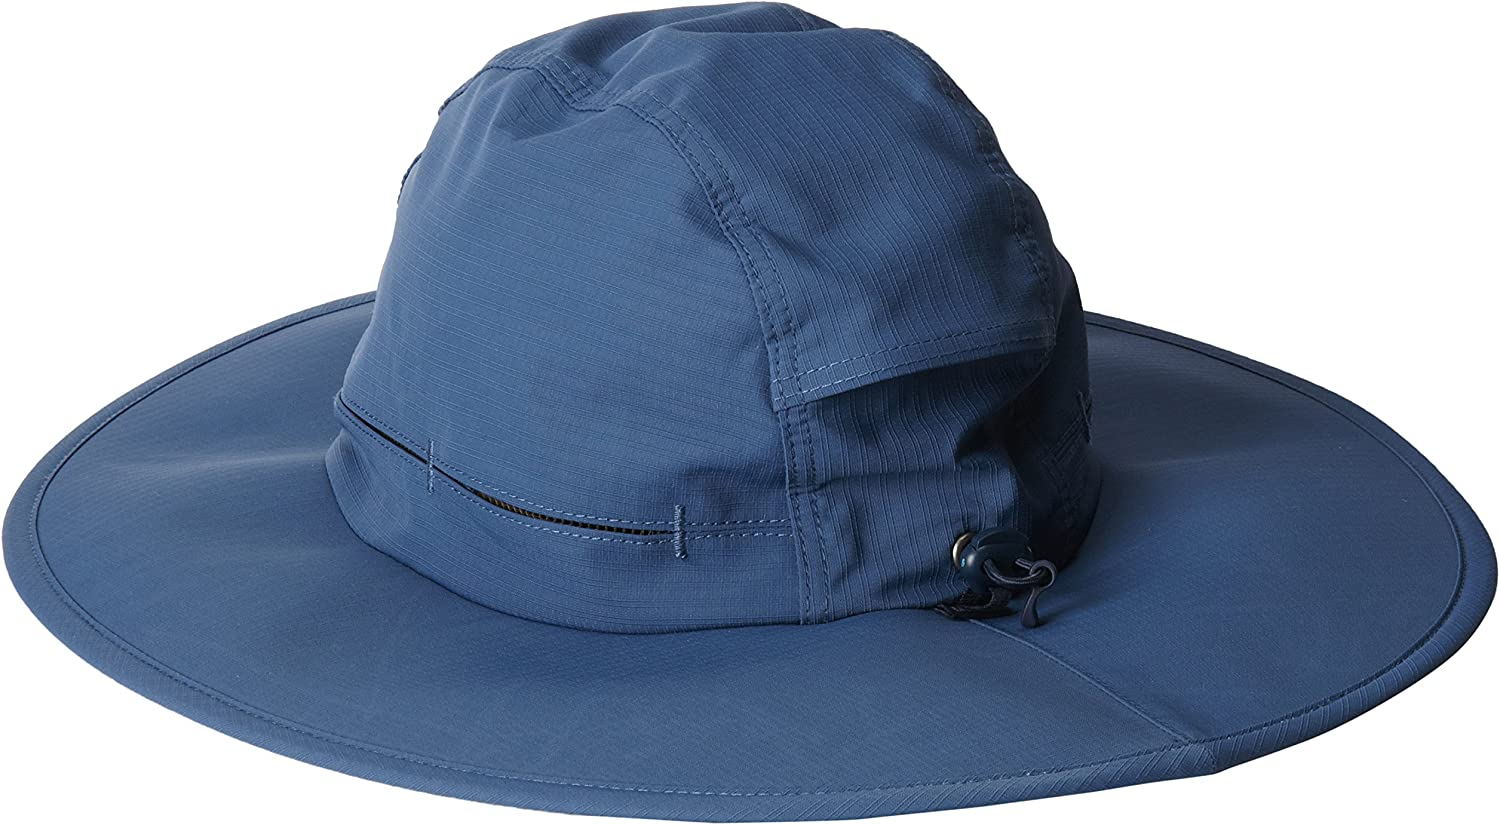 Outdoor Research Sombriolet Sun Hat Breathable Lightweight Wicking Protection